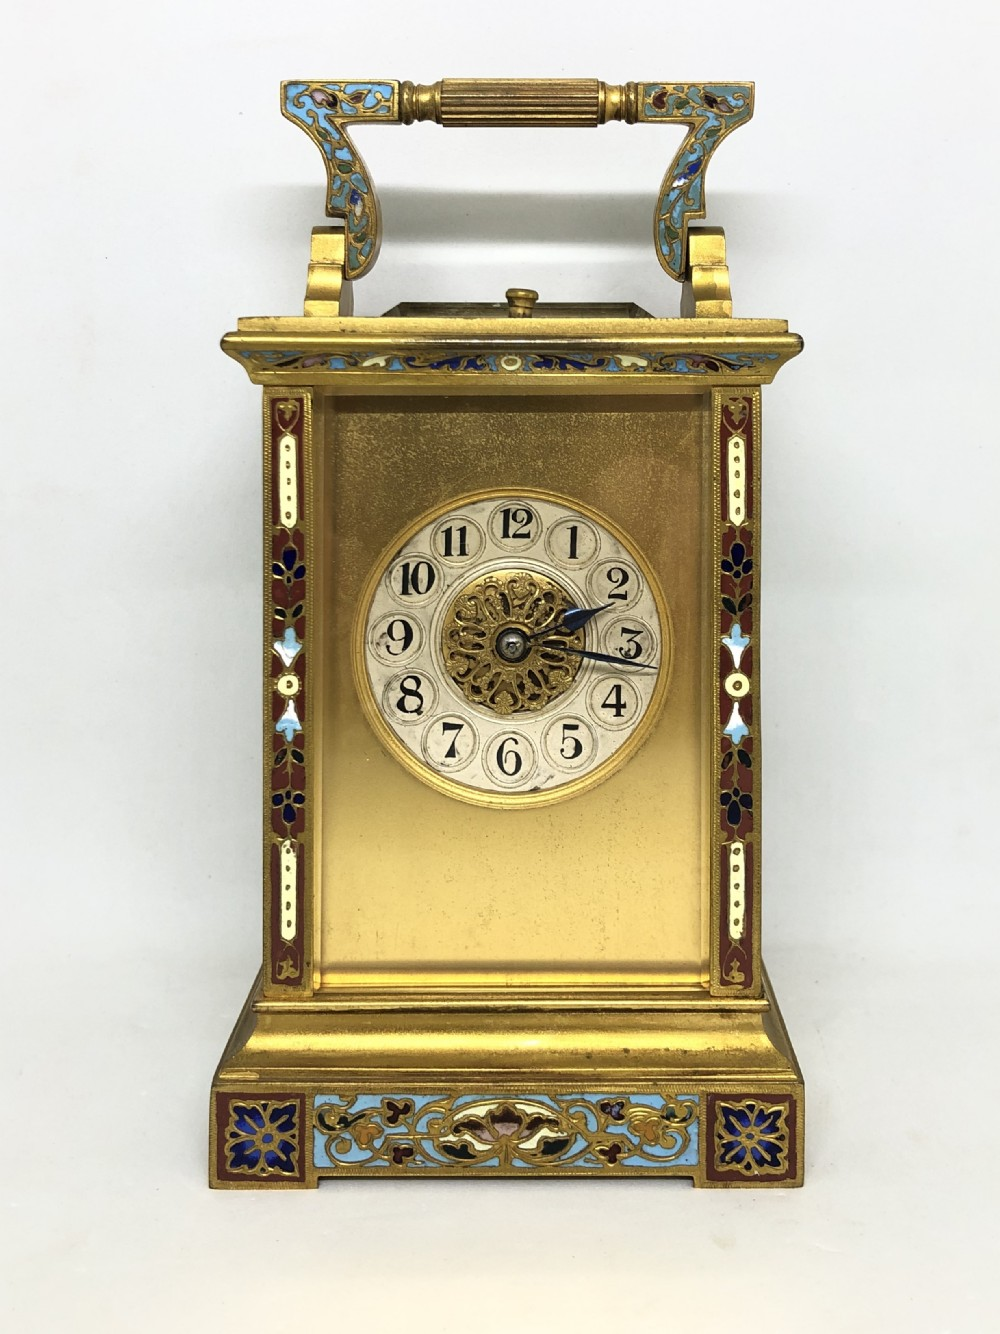 1890 champleve repeating carriage clock